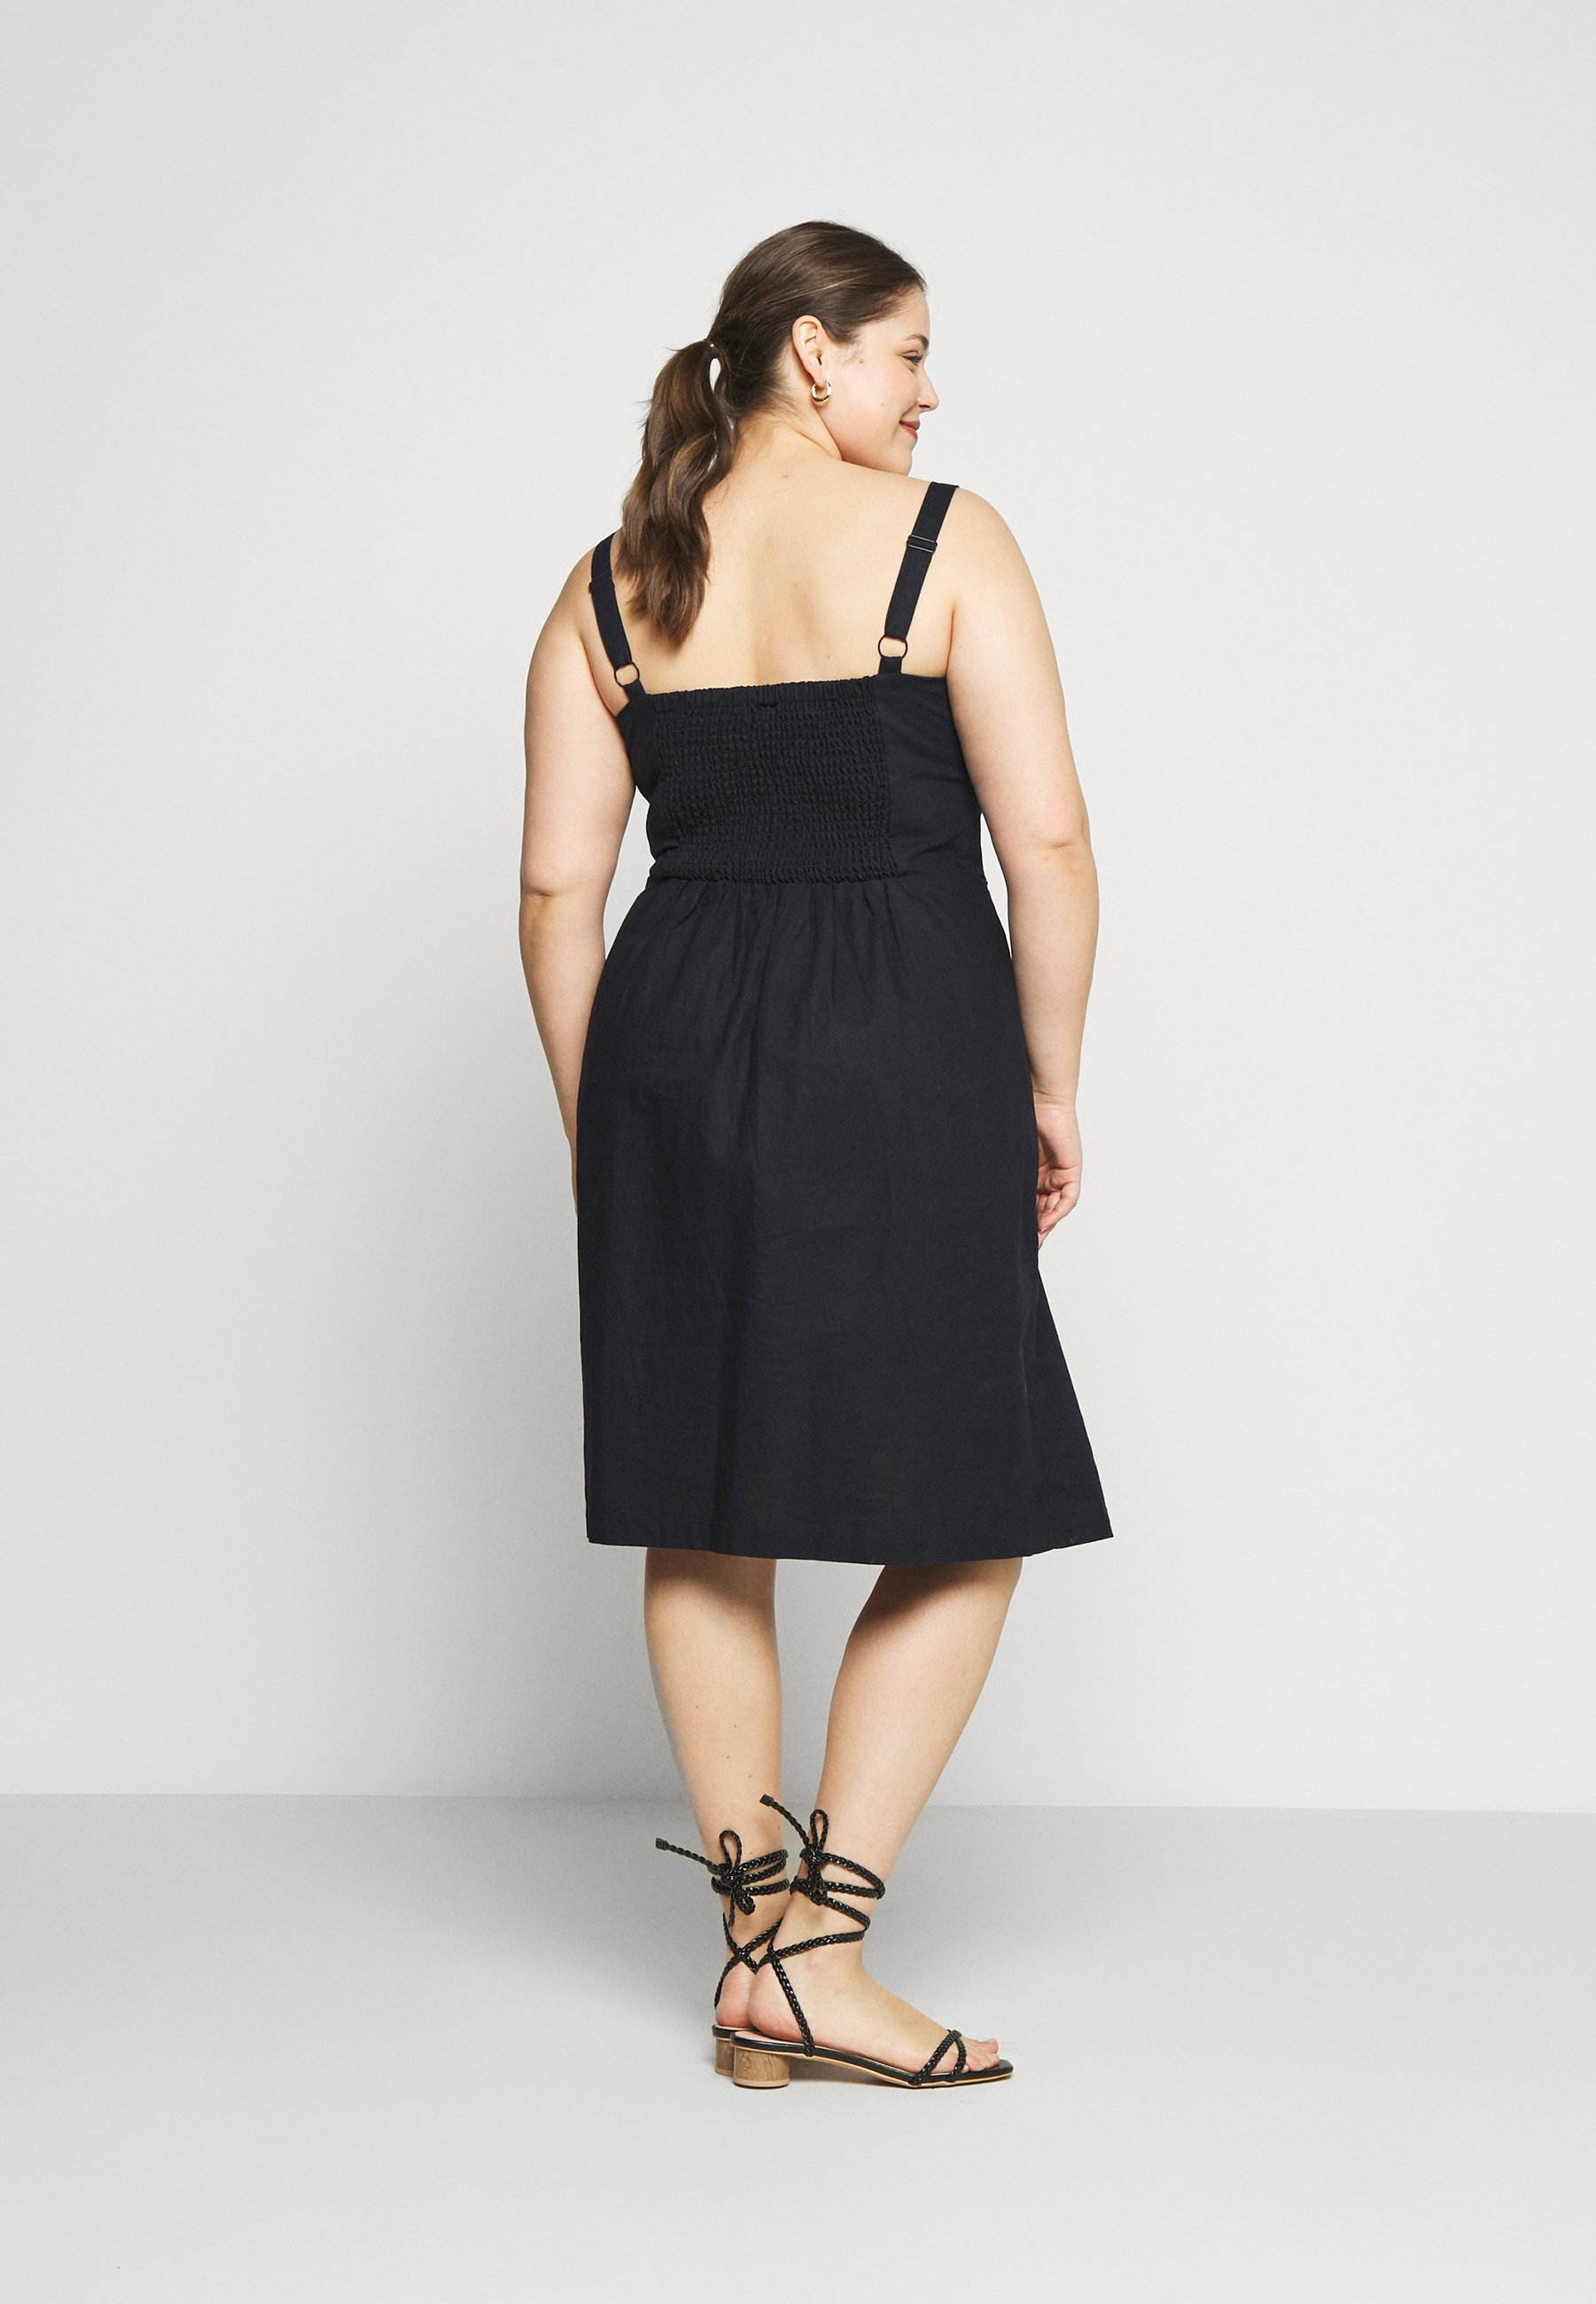 City Chic Dress Sweetly Tied - Day Navy